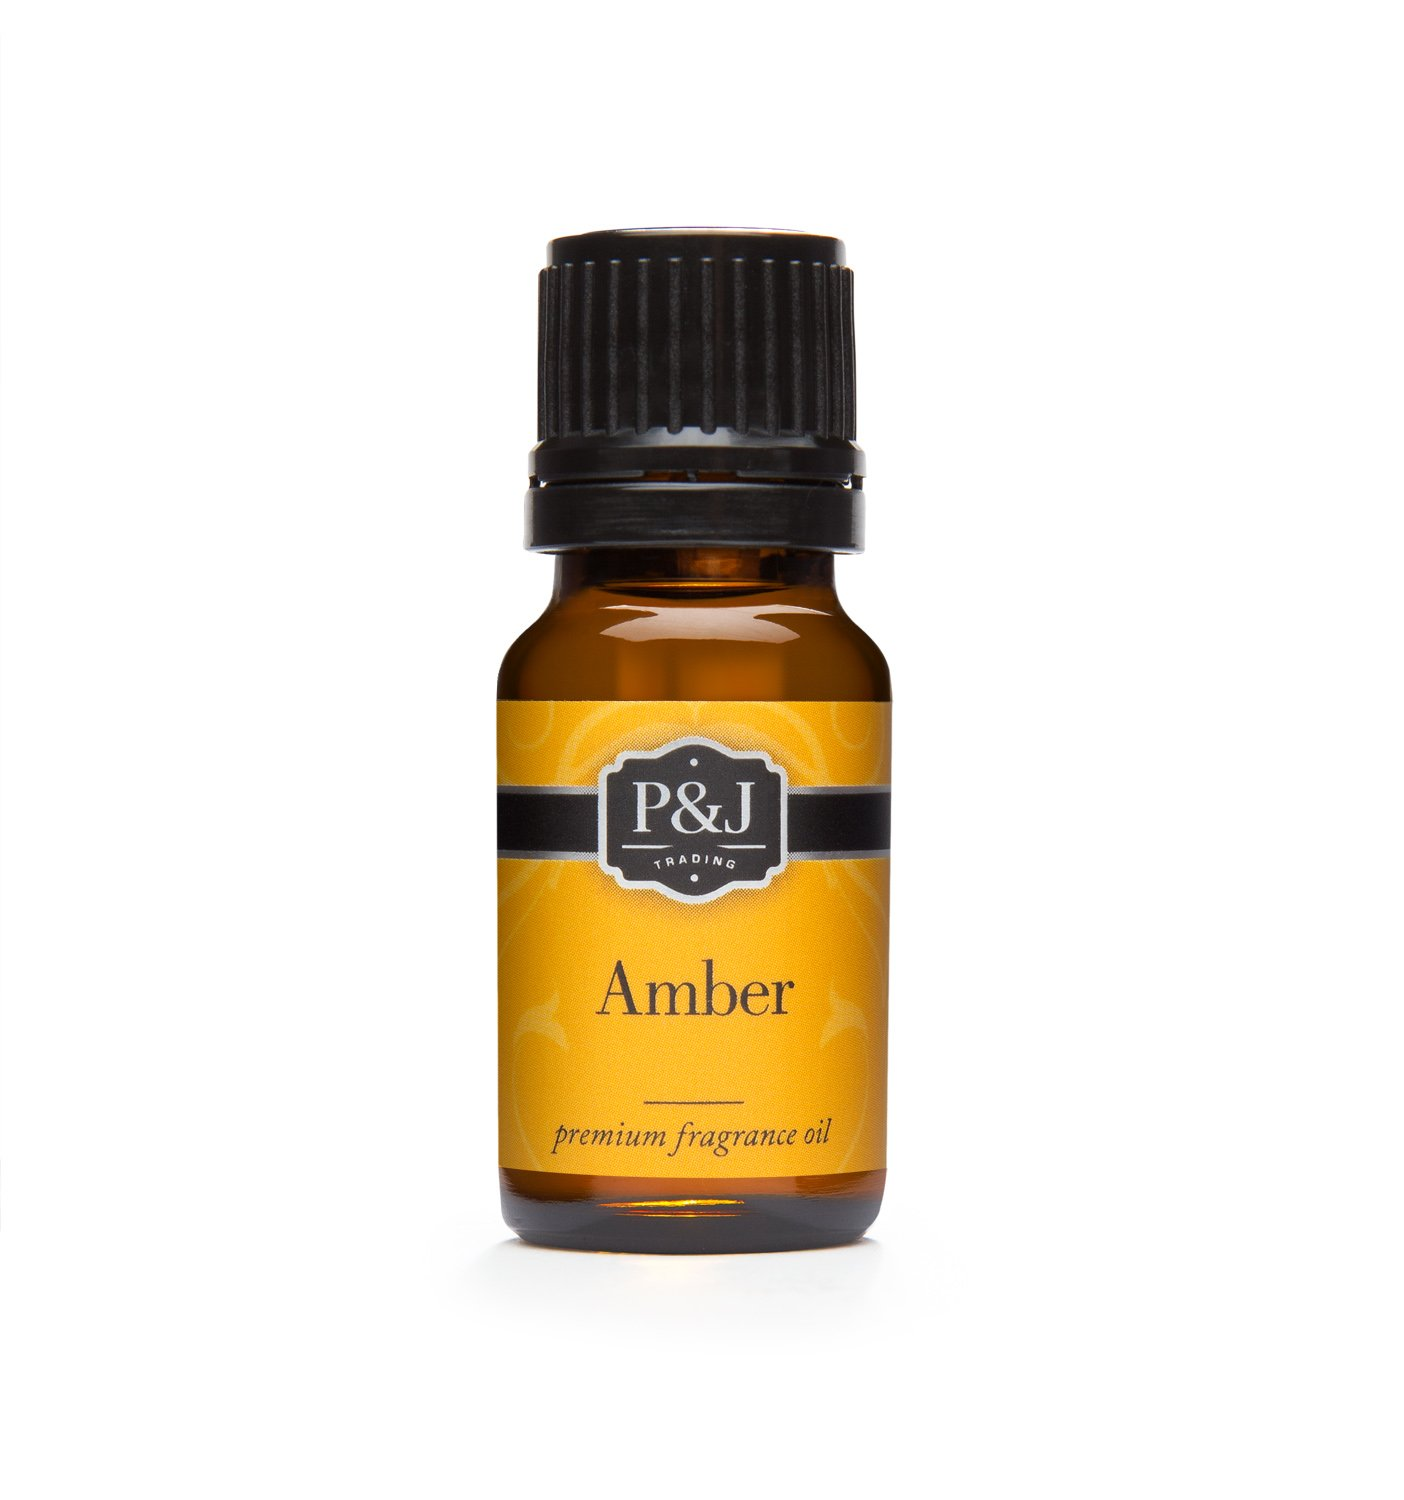 Amber Fragrance Oil - Premium Grade Scented Oil - 10ml